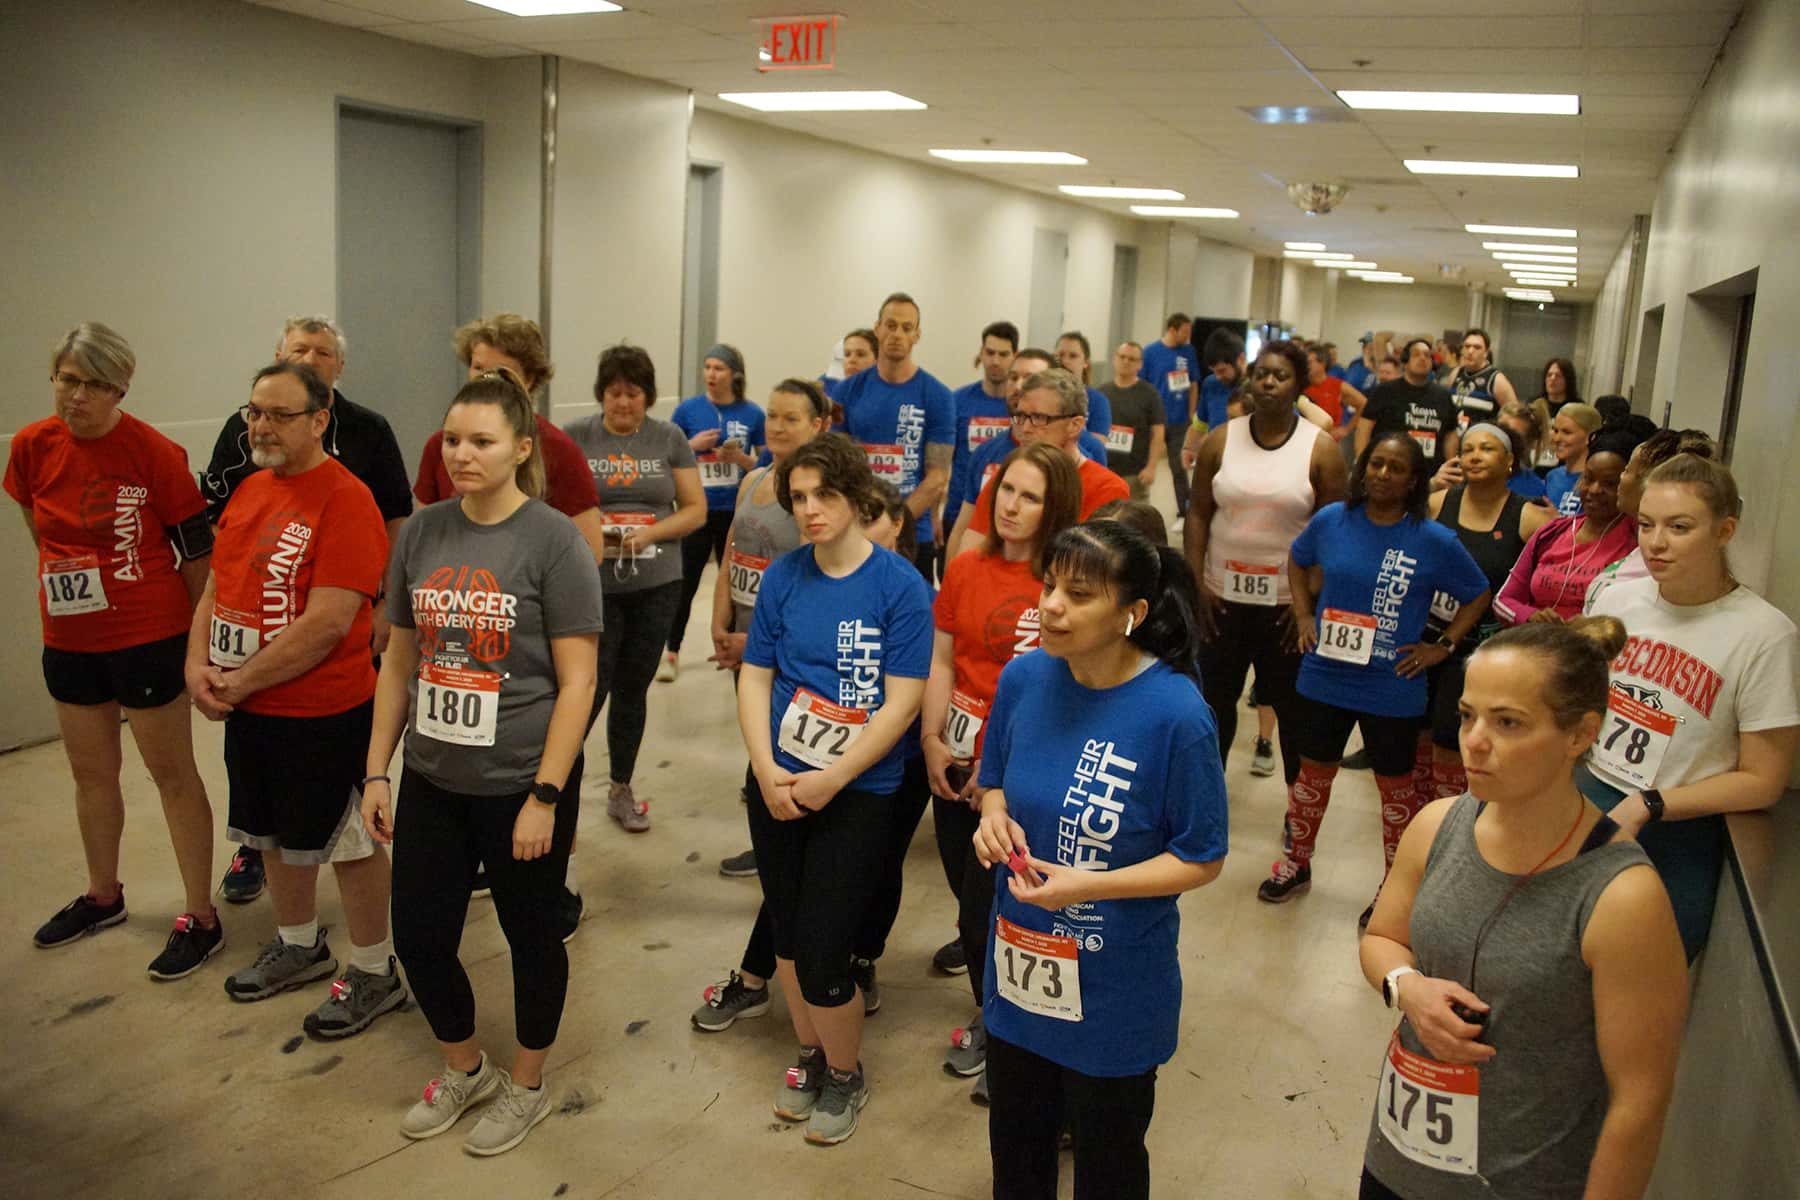 030720_fightforairclimb_0520